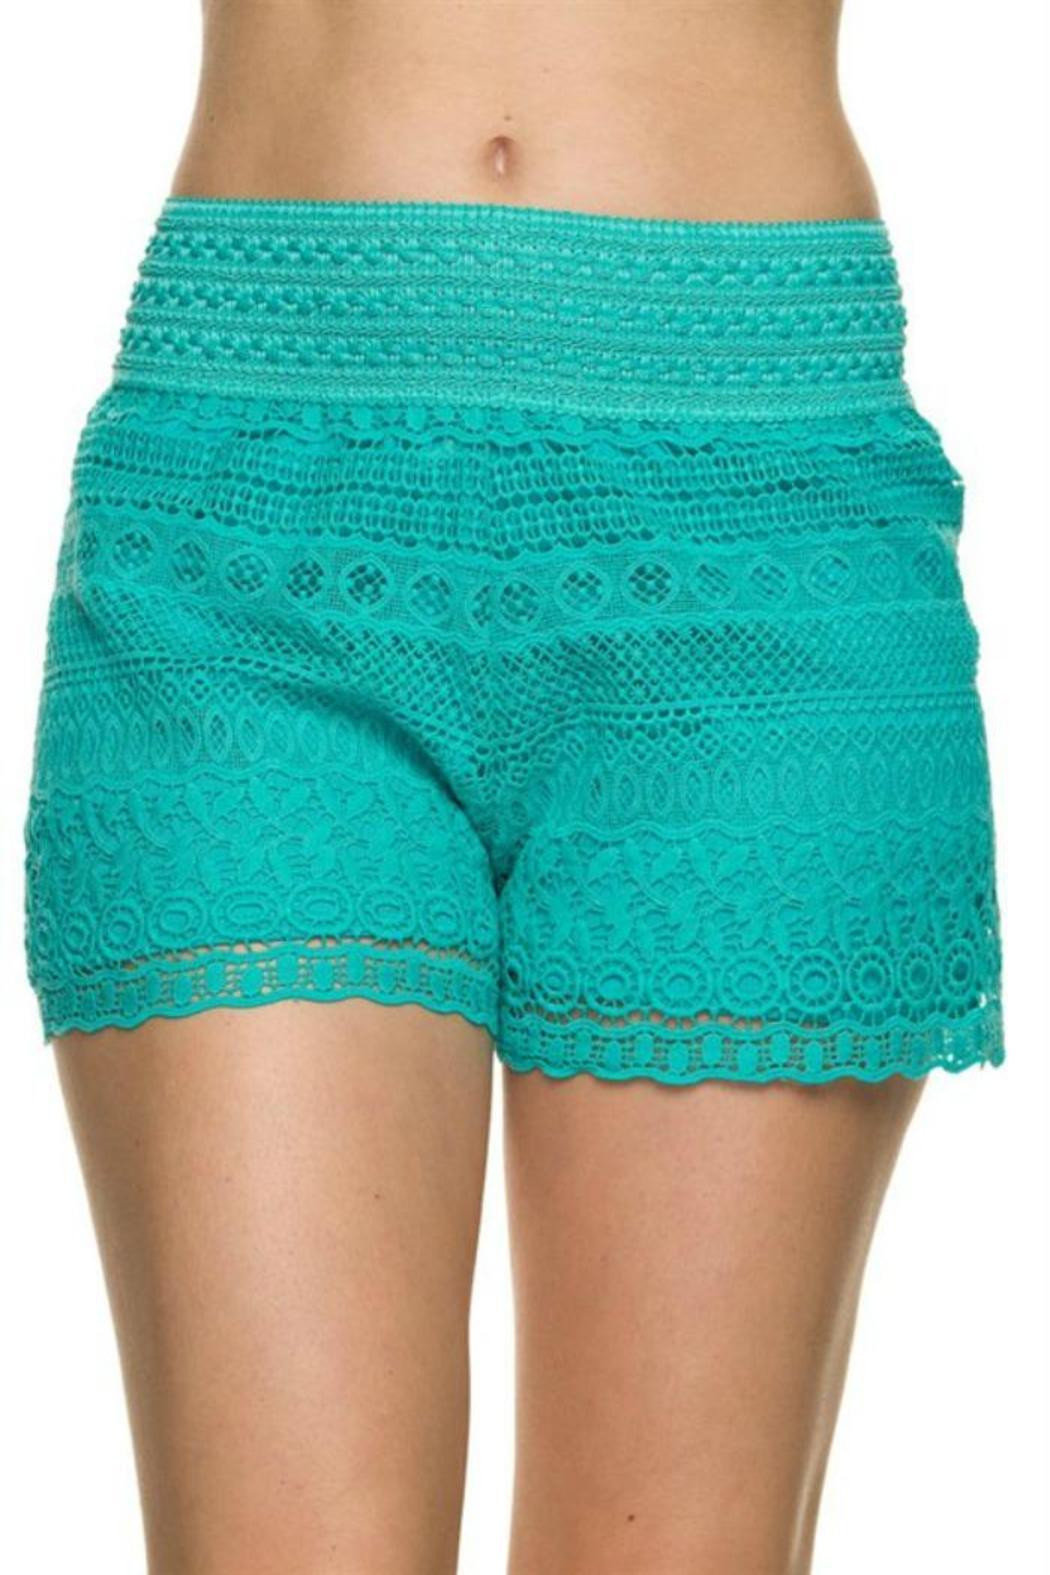 Elegant Kathy Lace Crochet Shorts From Texas by Chili Peppers Crochet Lace Shorts Of Unique 47 Photos Crochet Lace Shorts